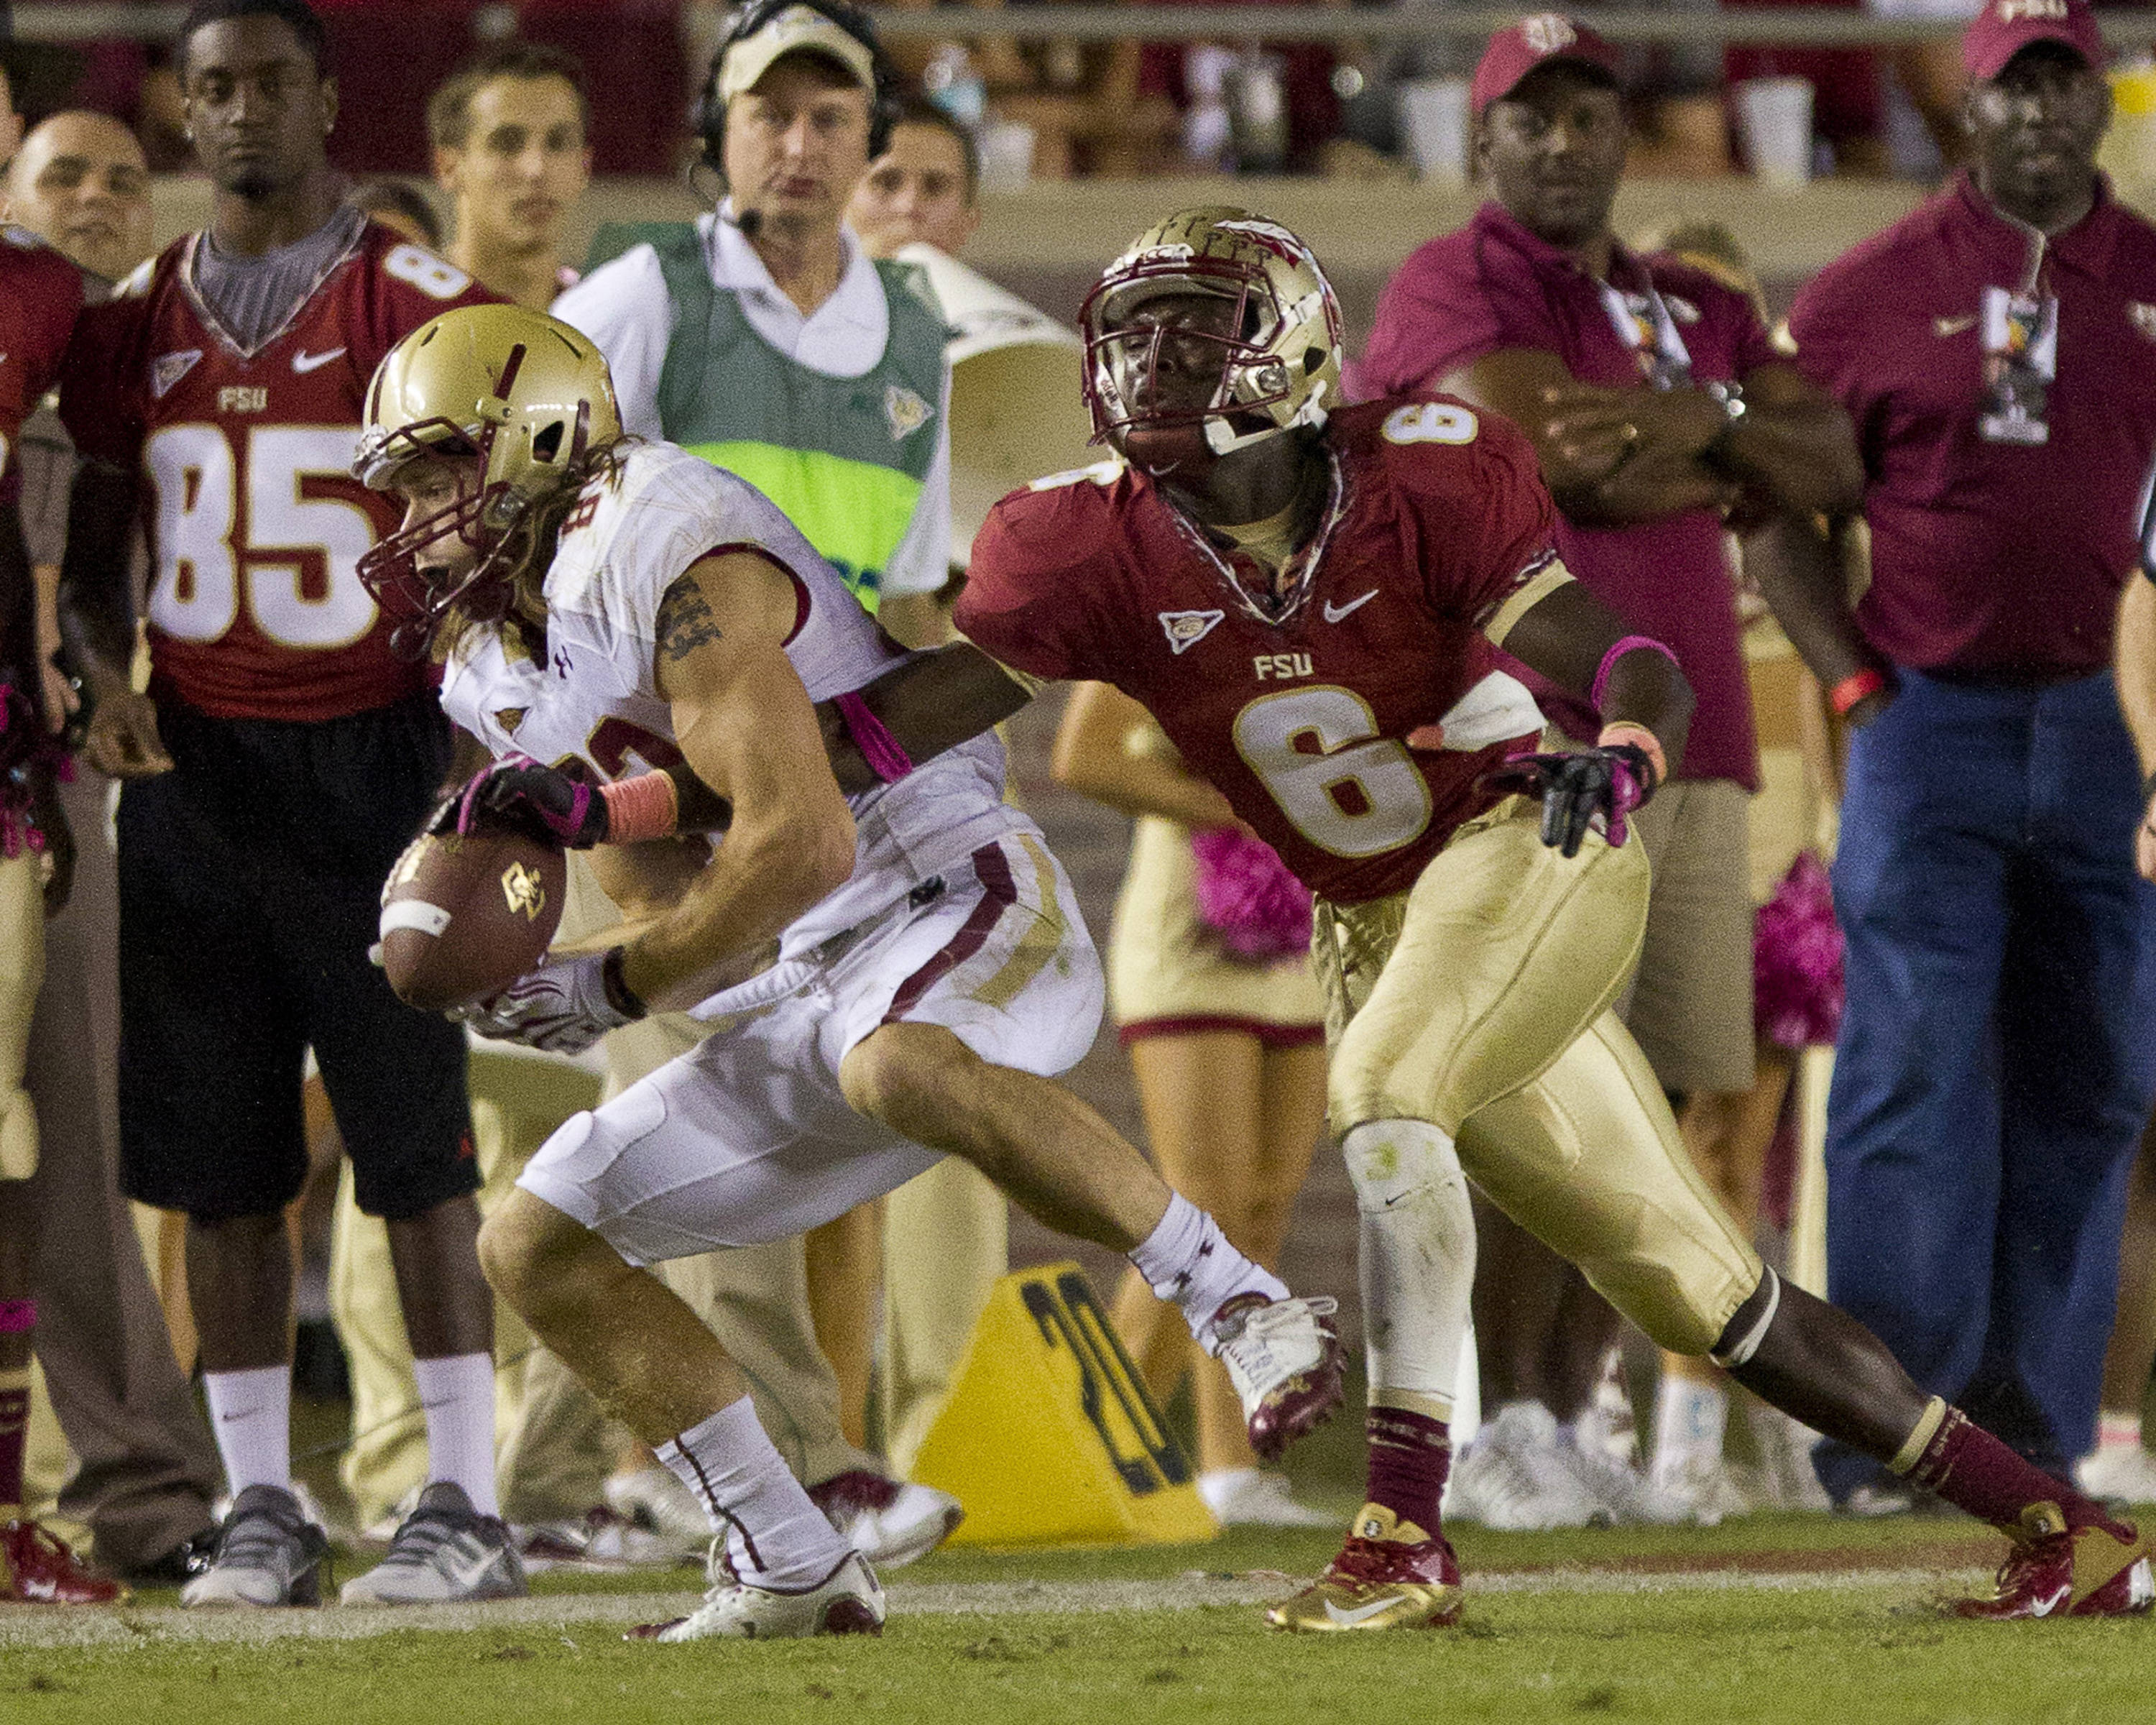 Nick Waisome (6) blocks a reception during the FSU vs Boston College football game on October 13, 2012 in Tallahassee, Fla.